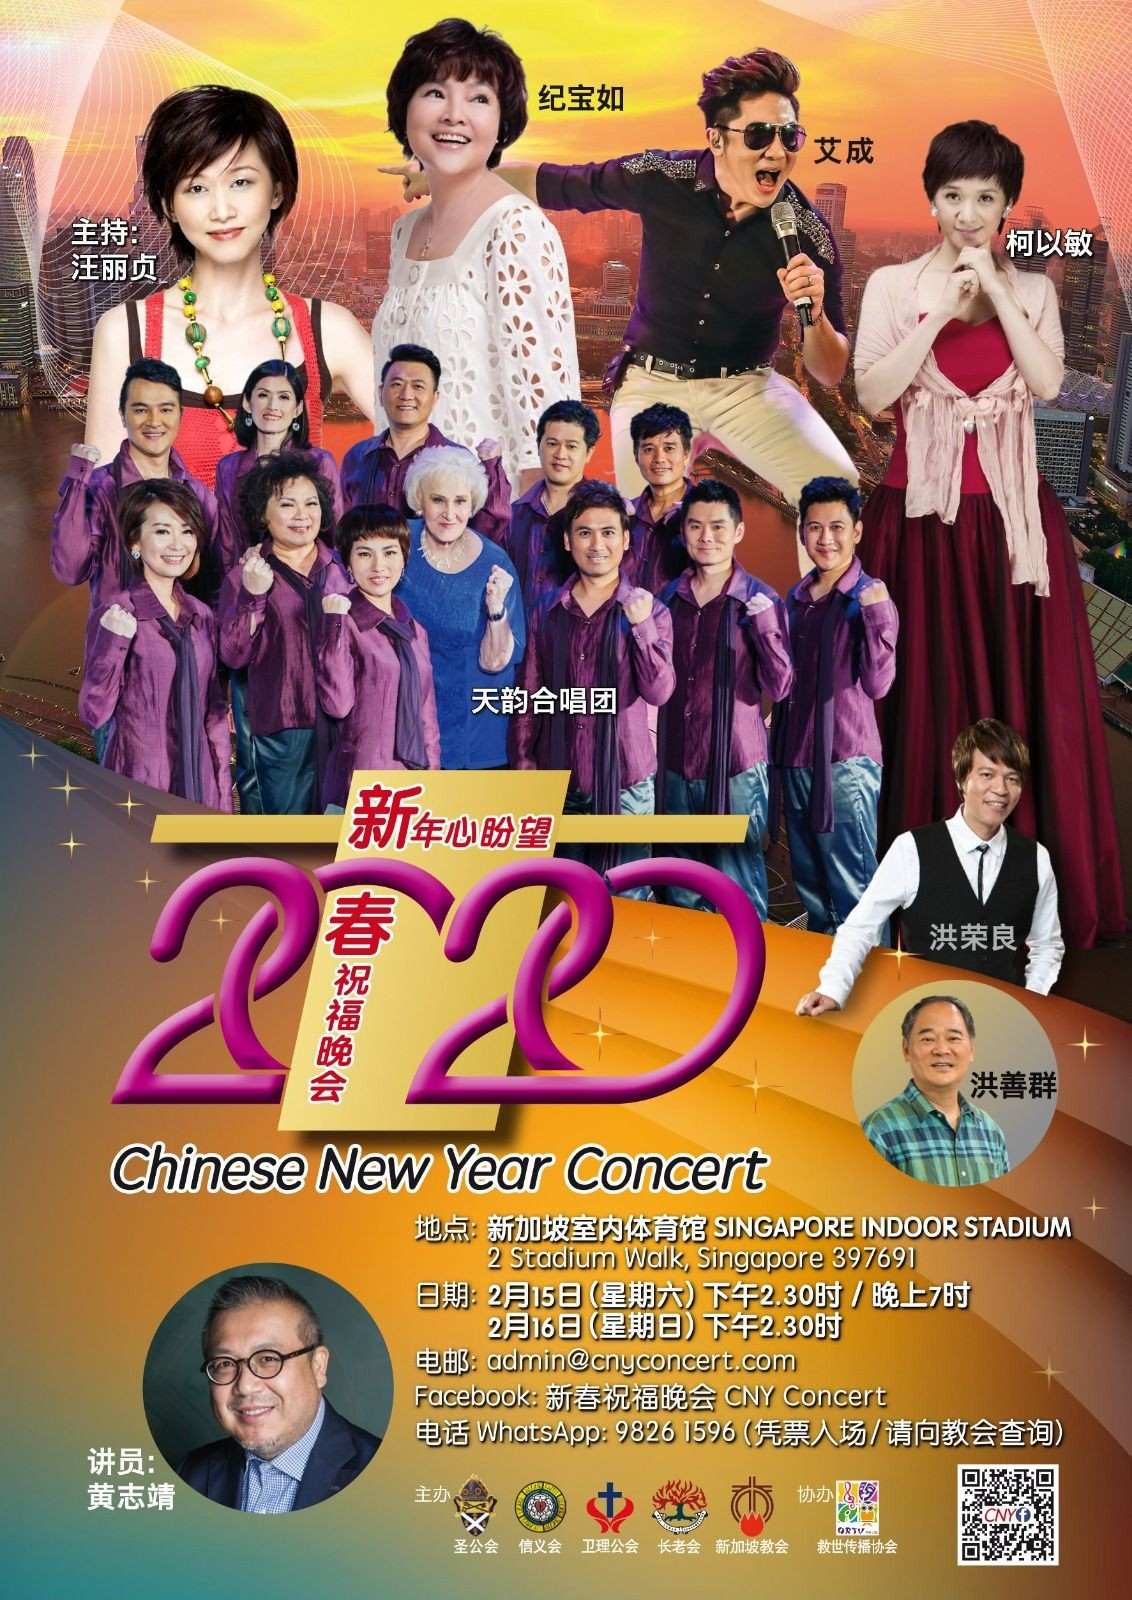 Chinese New Year Concert 2020 | 新春祝福晚会